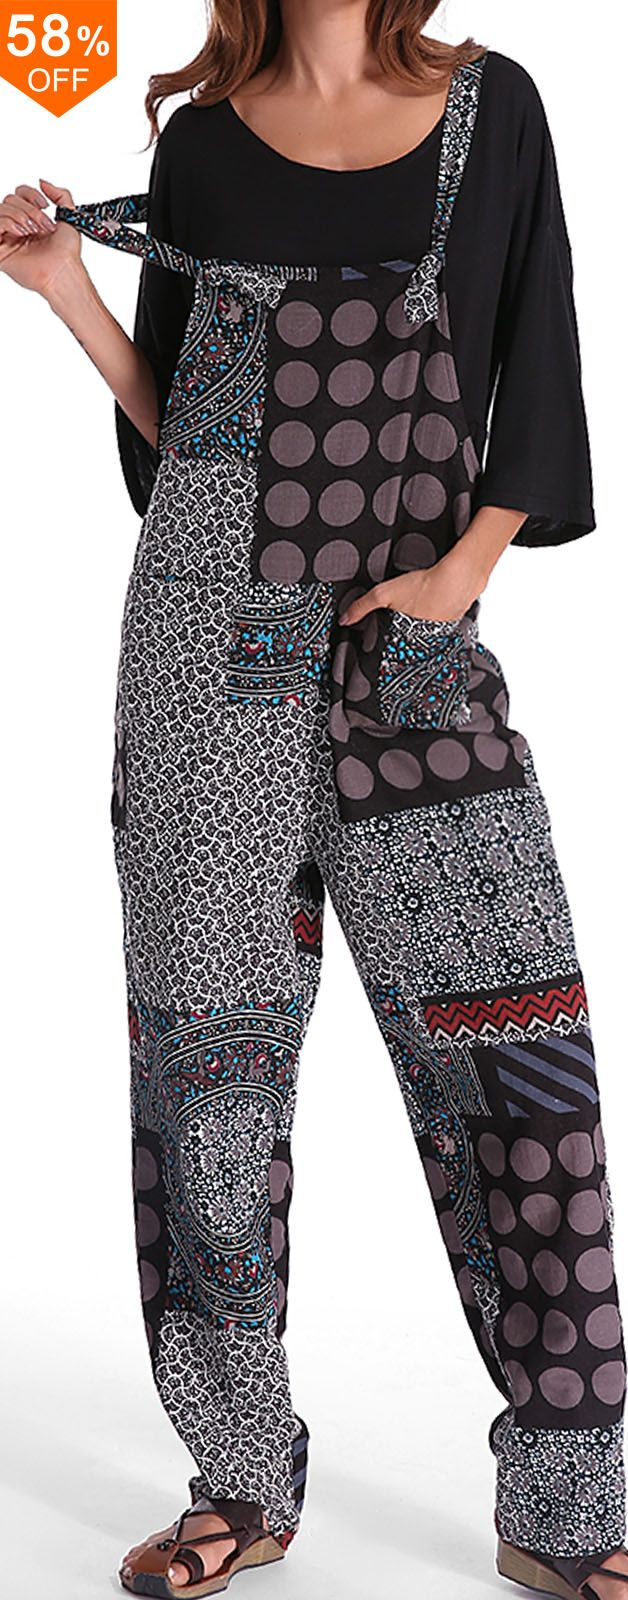 Gracila Casual Women Polka Dot Printed Loose Patchwork Pocket Jumpsuits.Casual S... 1